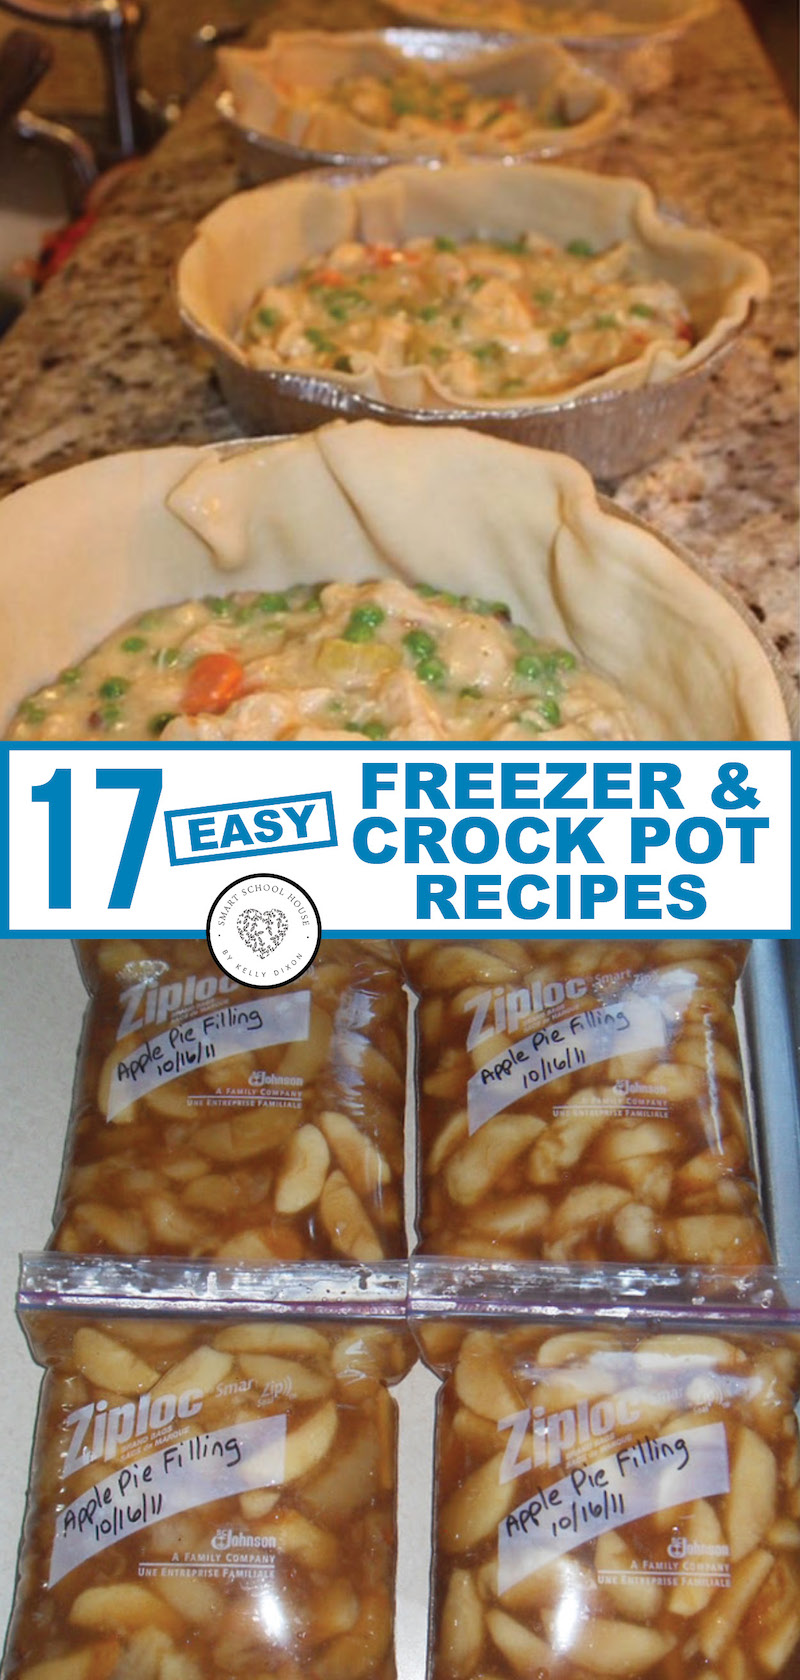 Freezer crock pot recipes are easy and quick make-ahead meal ideas. Just dump and go! We've gathered THE BEST LIST of crockpot freezer meal ideas that everyone craves on busy weeknights.